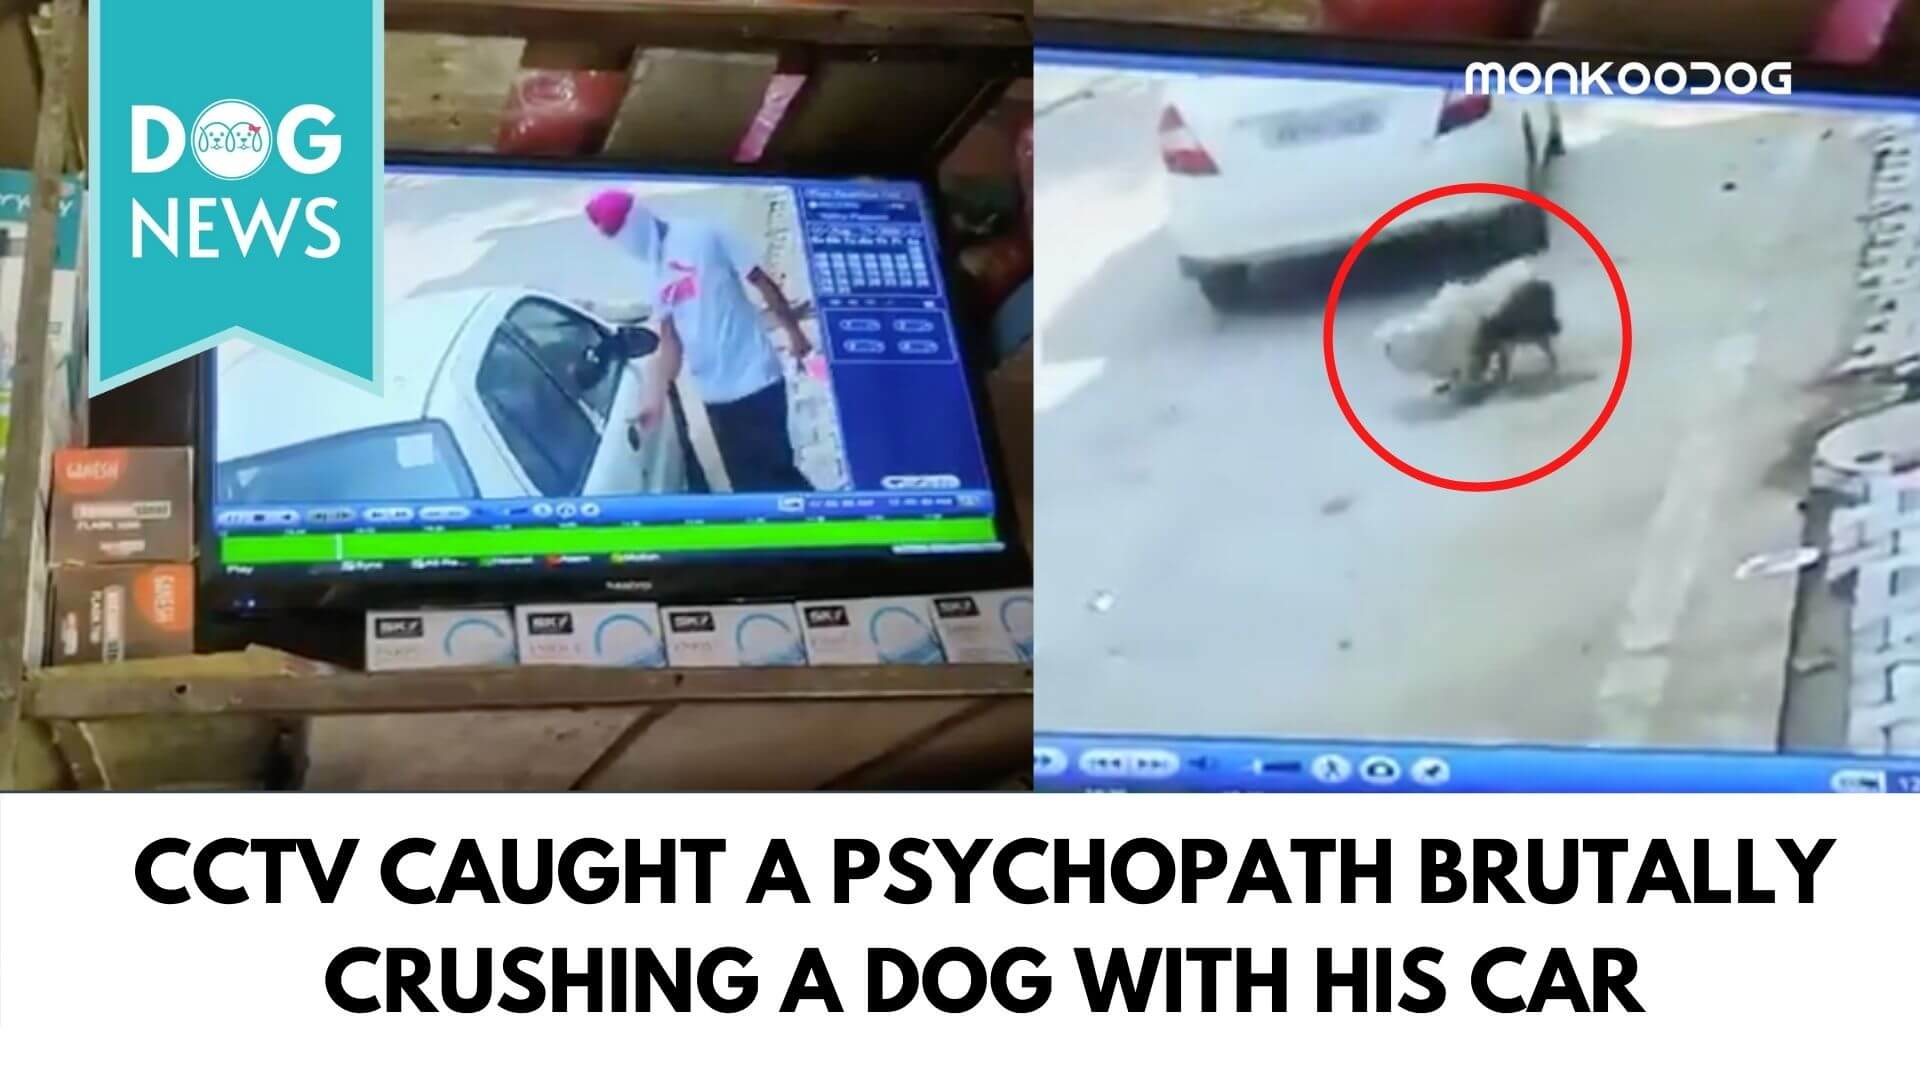 Man Caught on CCTV Brutally Crushing a Stray Dog with his Car, Maneka Gandhi Demands Immediate Arrest